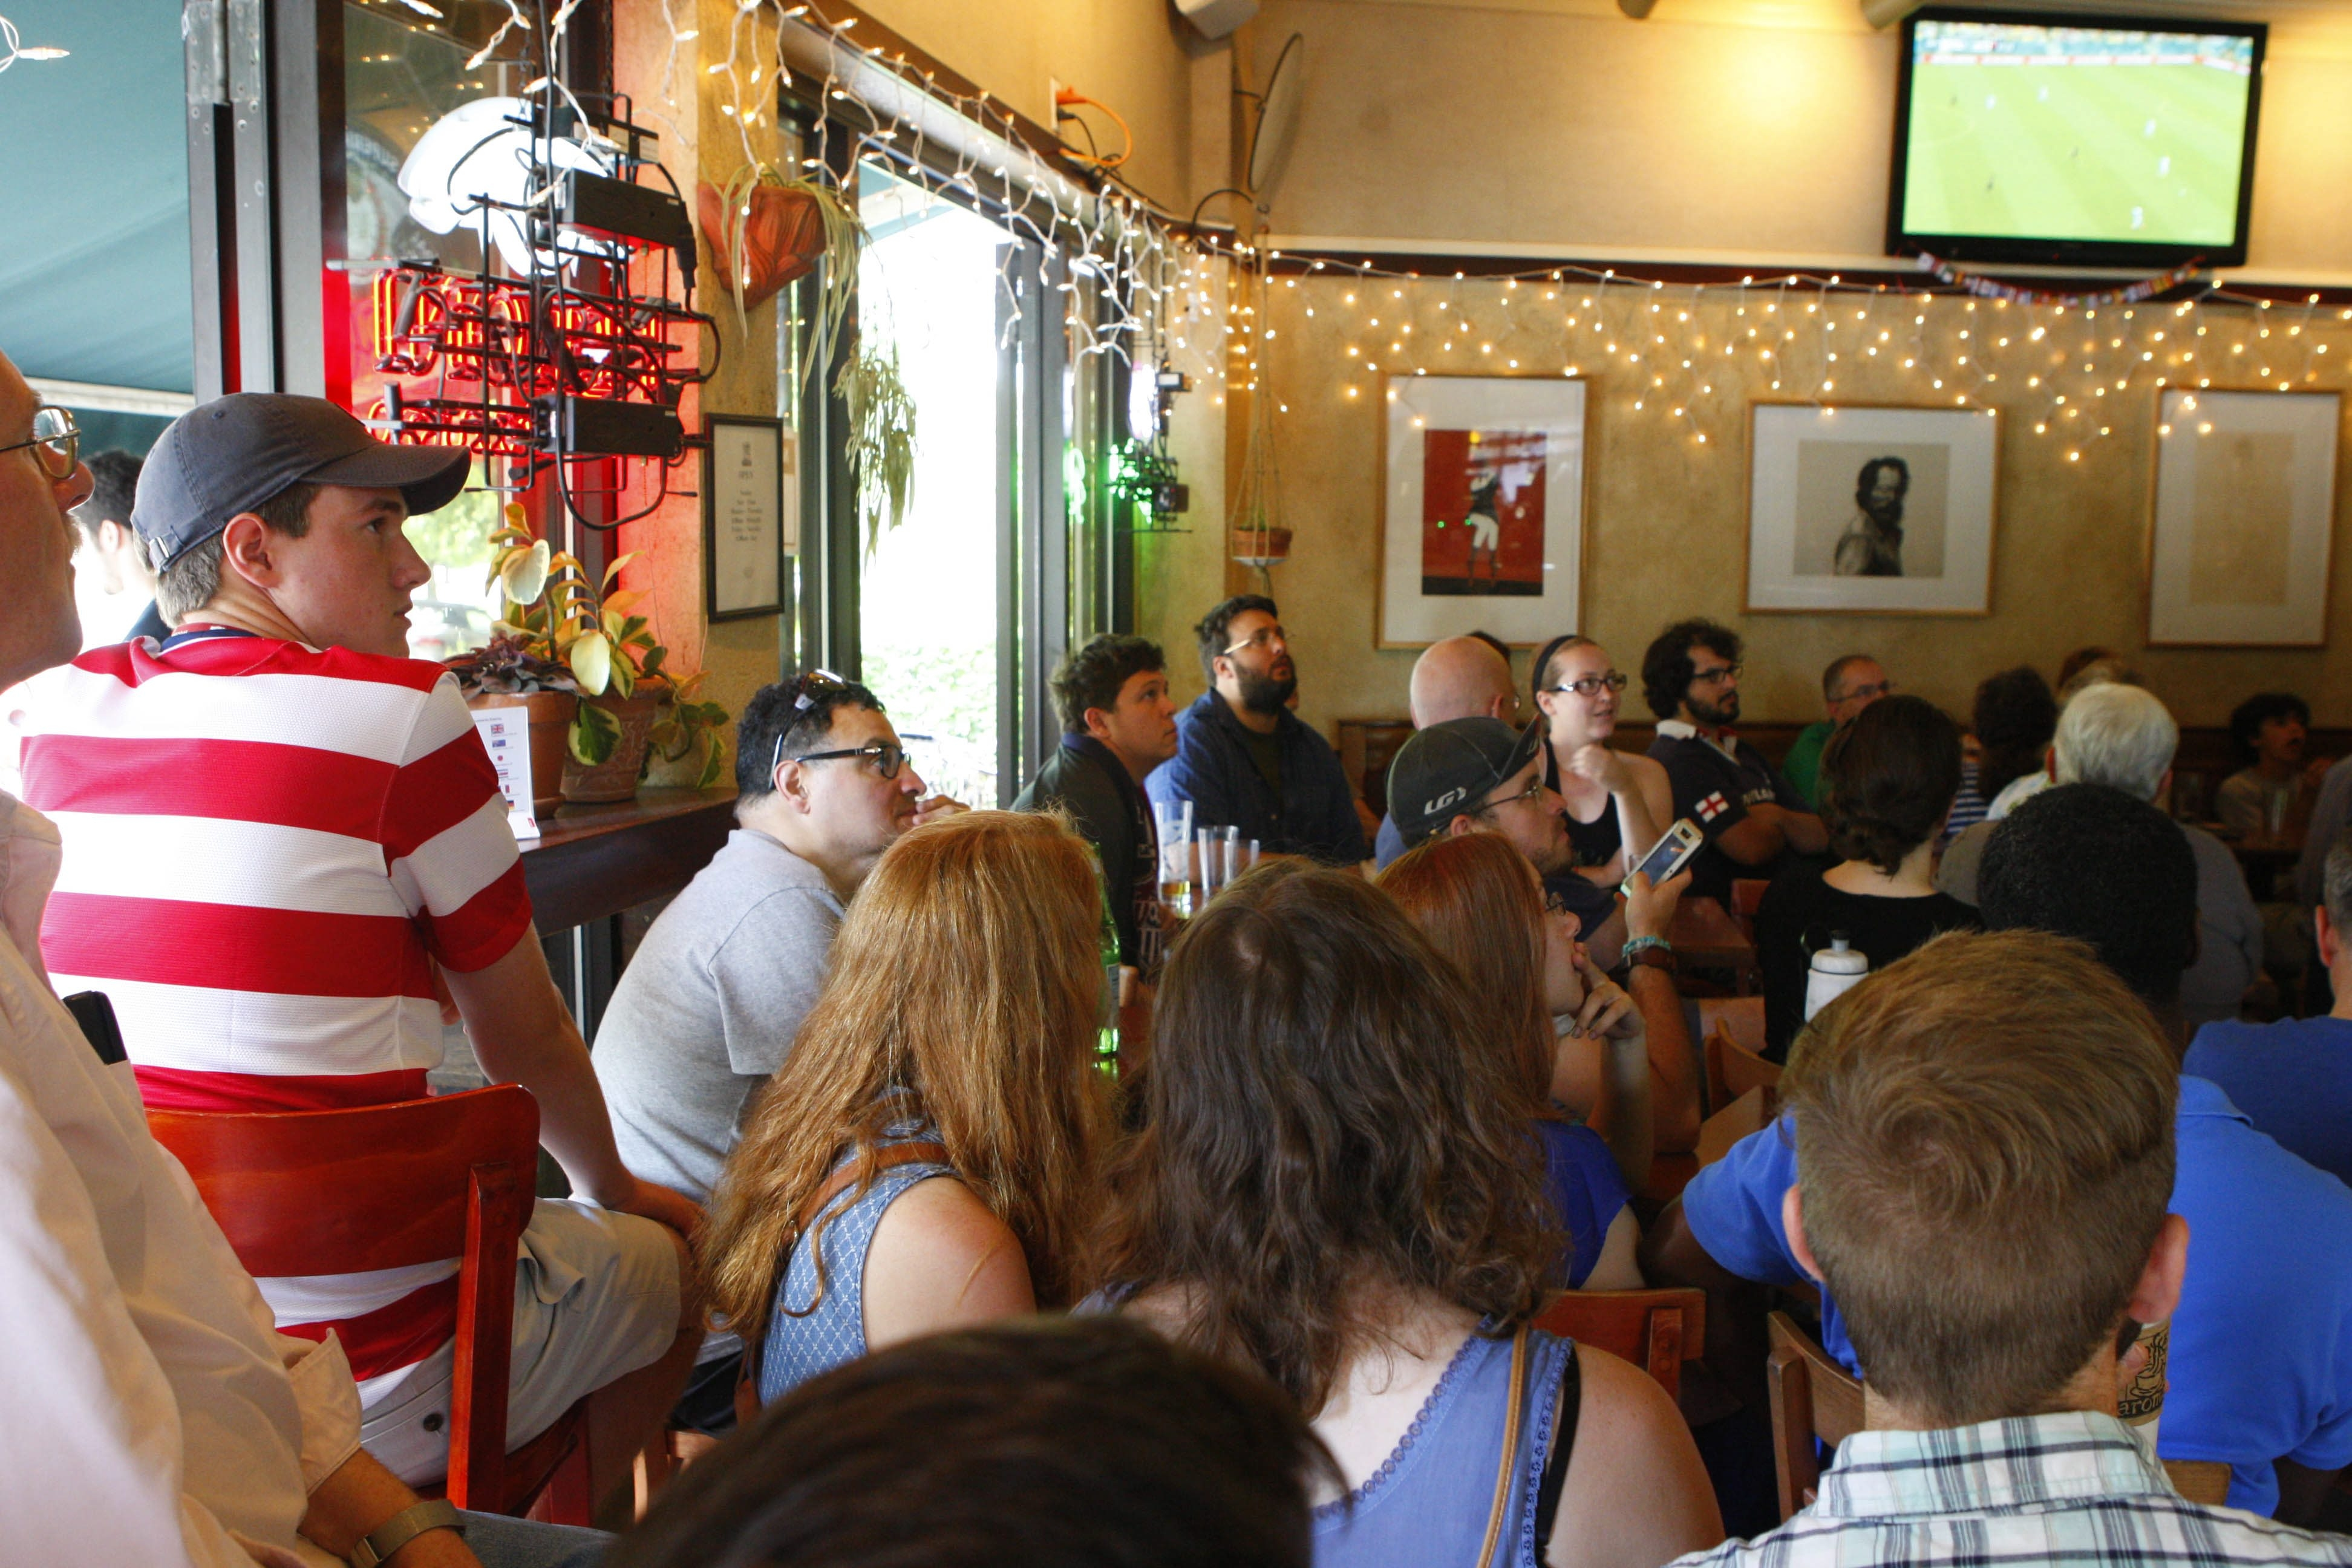 Fans watch the USA vs. Germany World Cup match at Cafe Aroma on Bidwell and Elmwood, Thursday, June 26, 2014.  (Derek Gee/Buffalo News)